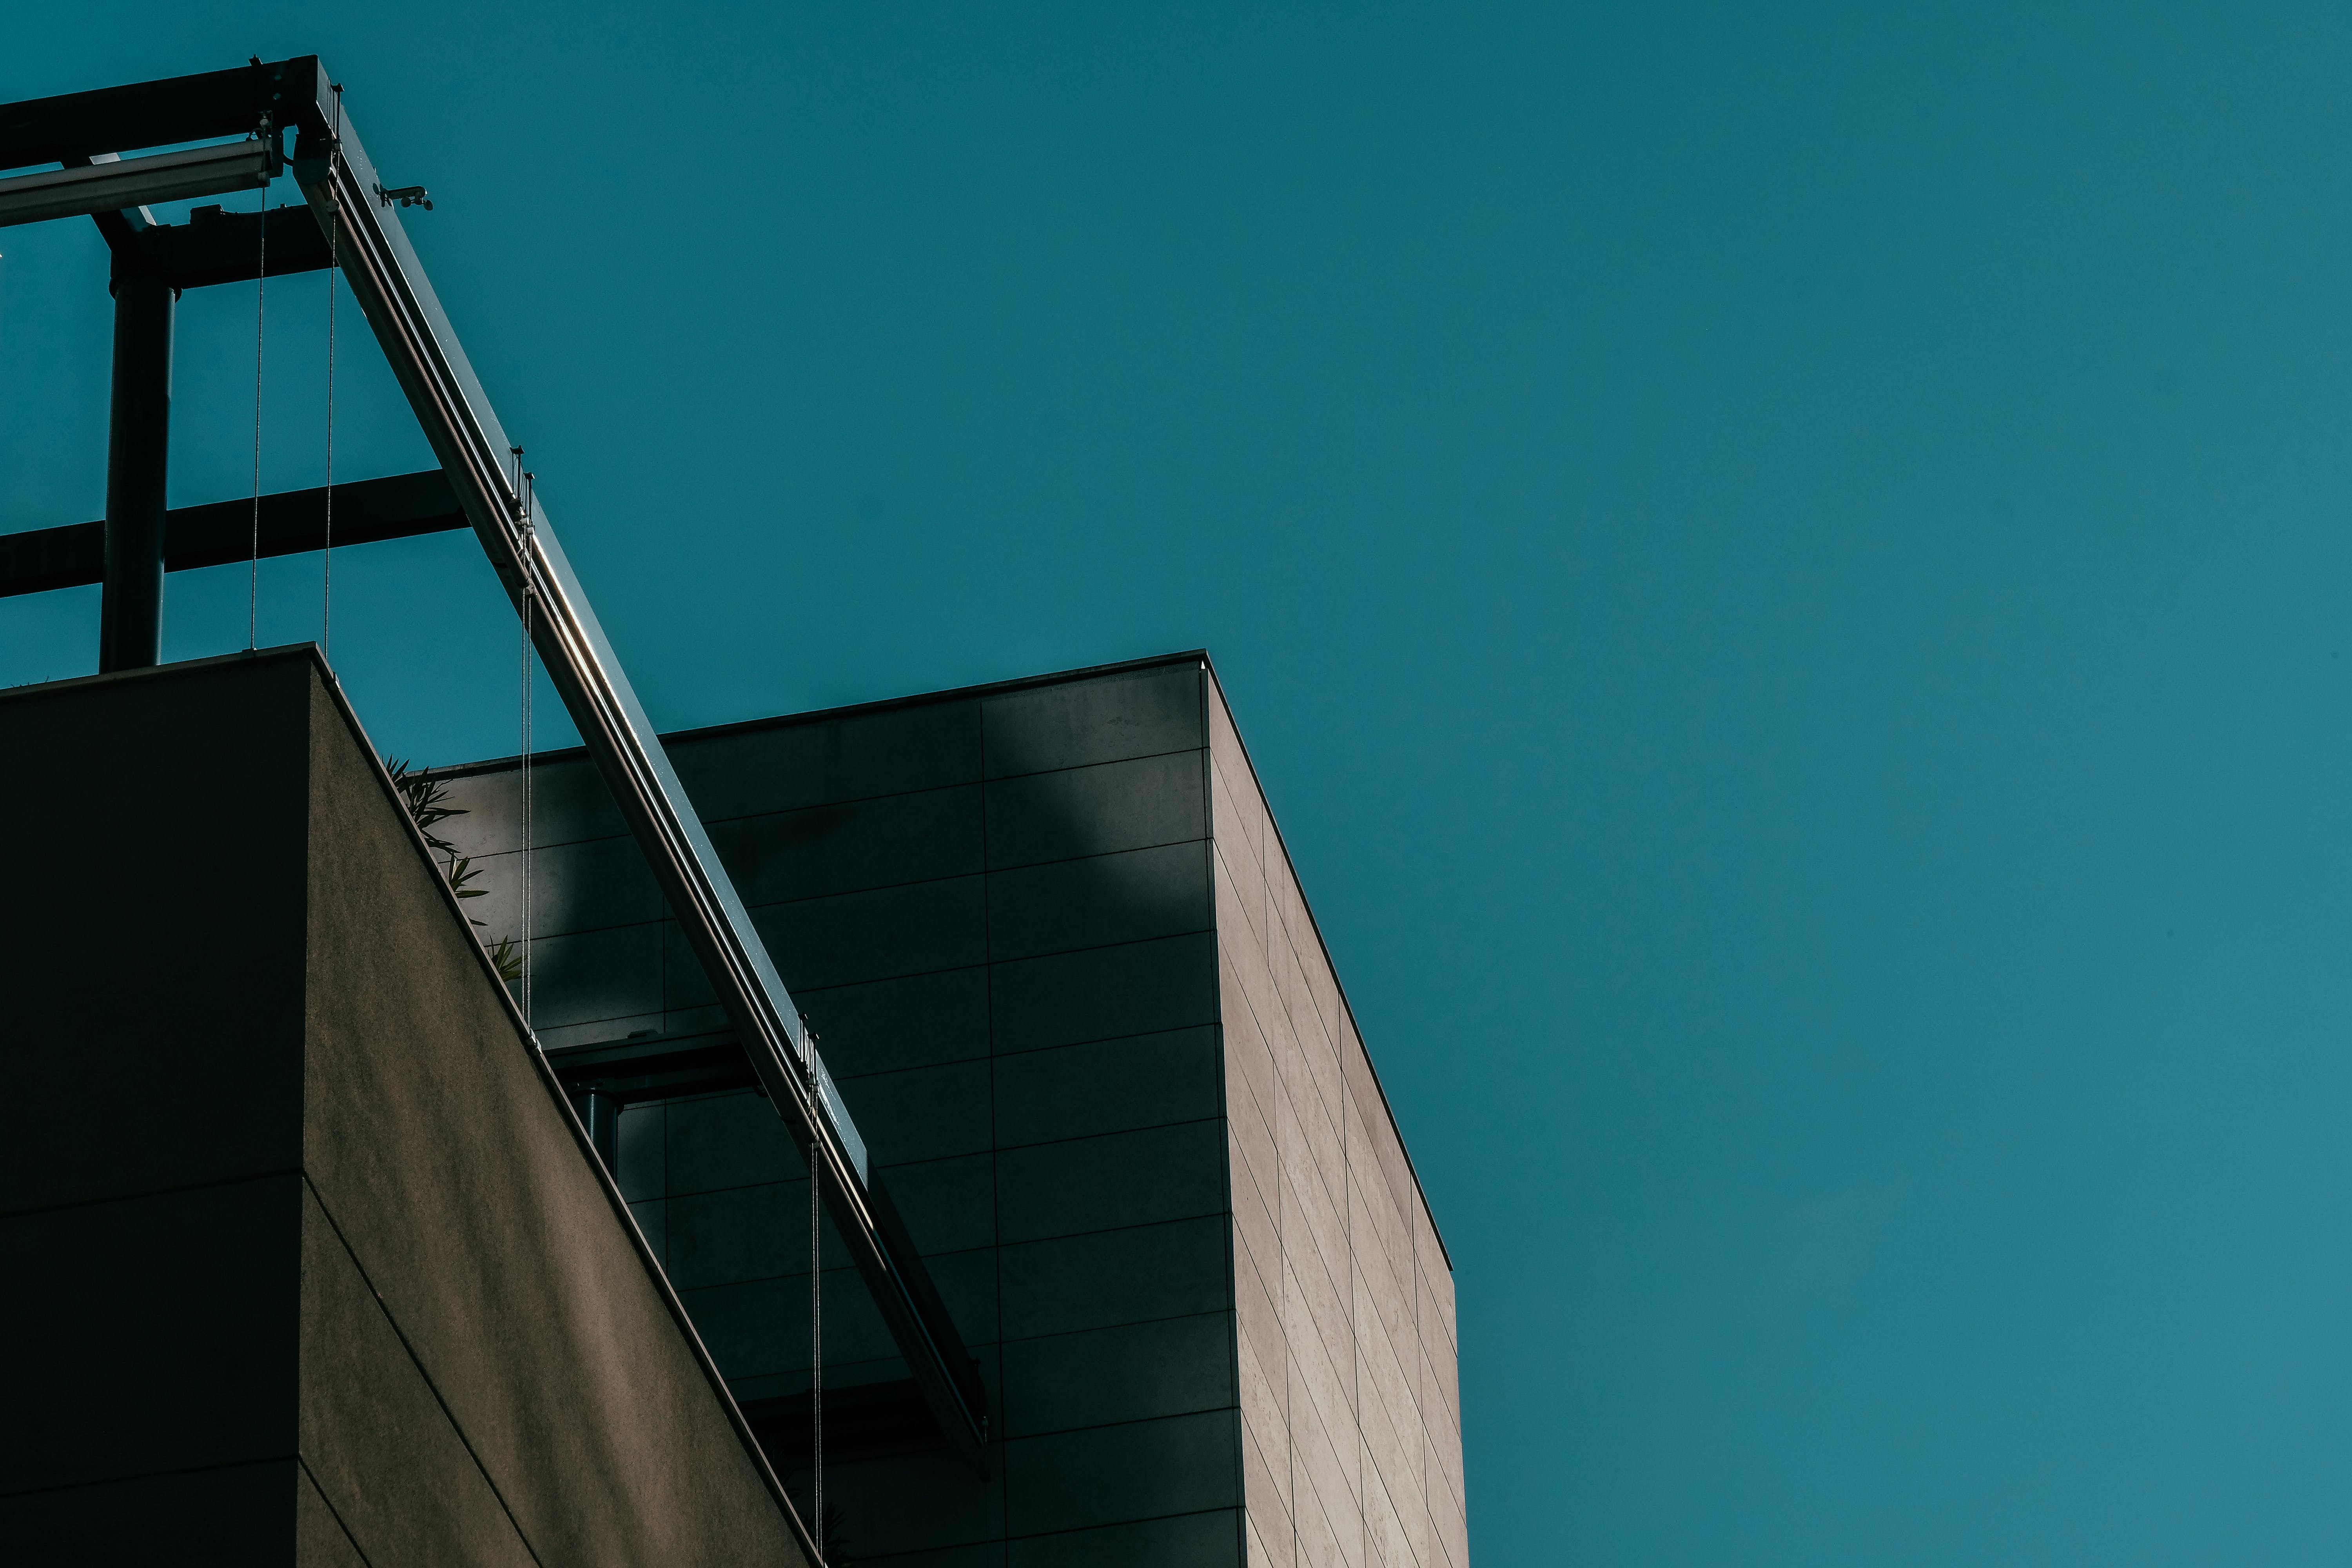 Free stock photo of architectural design, architecture, blue sky, building